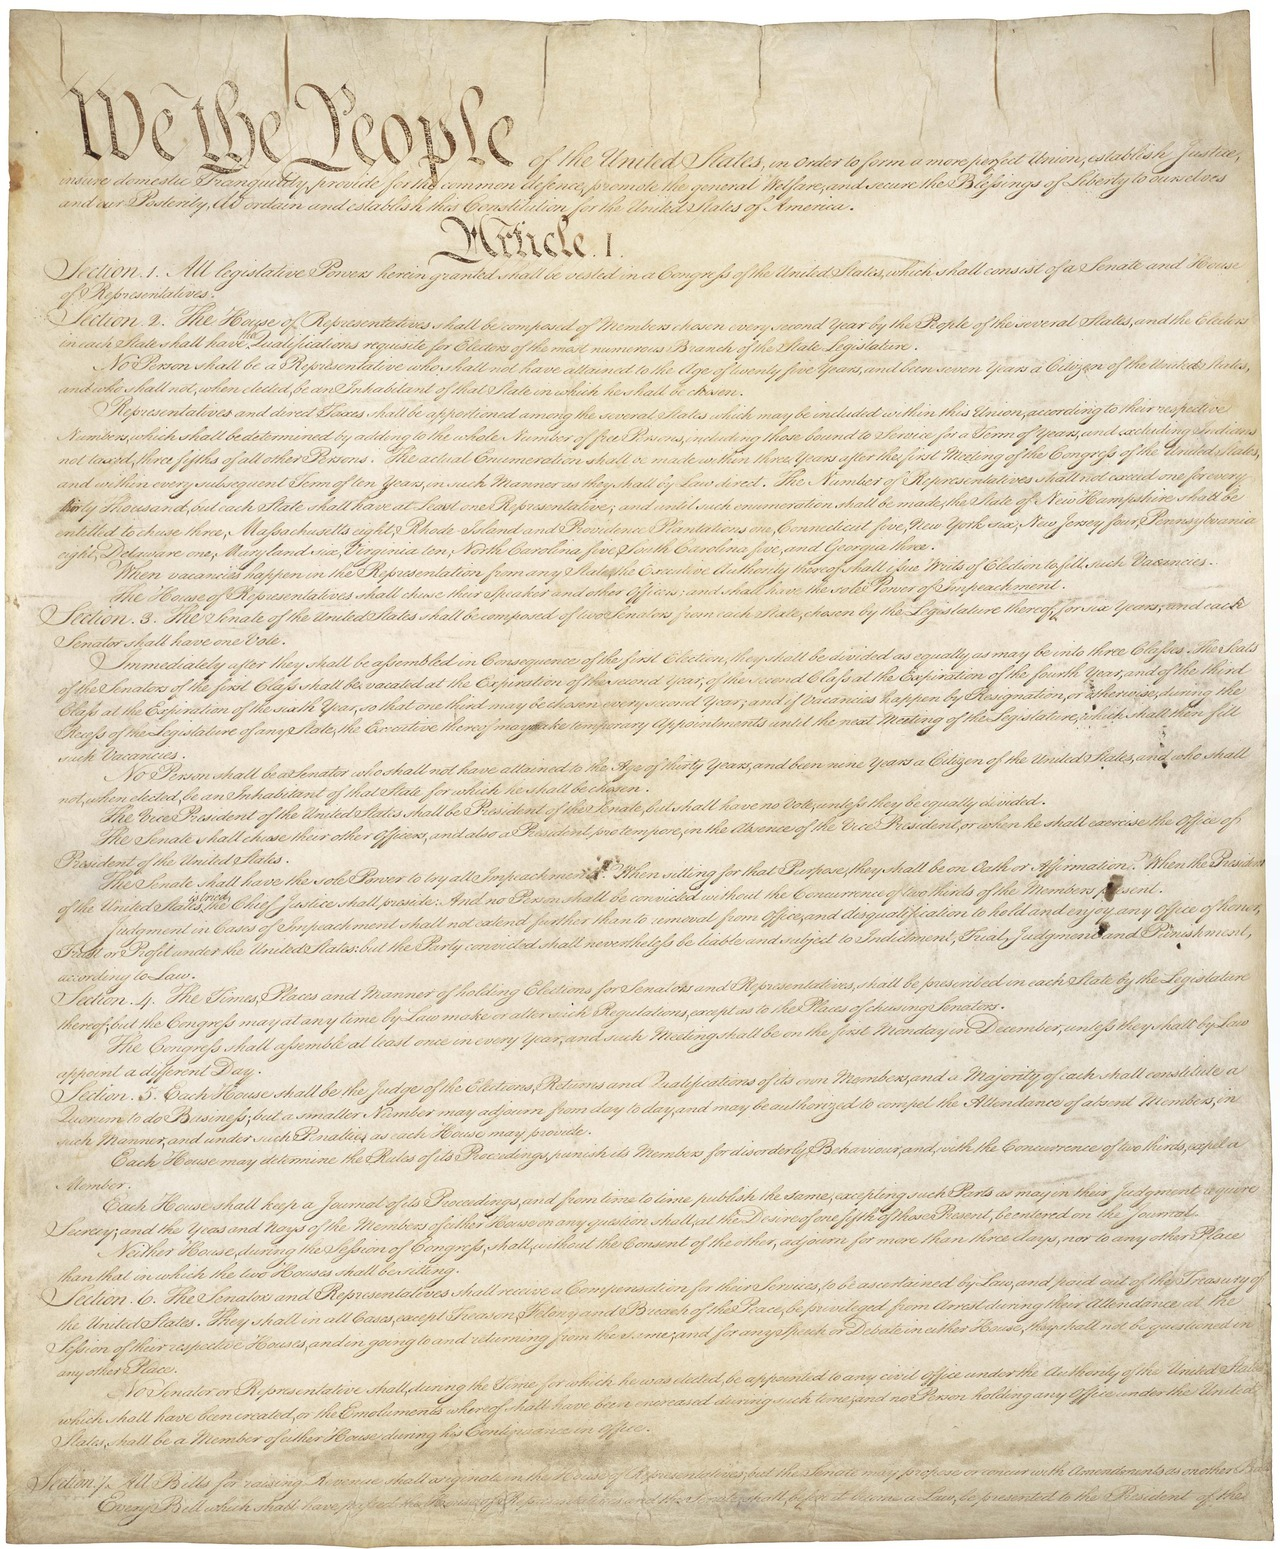 todaysdocument:  Celebrating the 225th Anniversary of the Constitution! More Constitution-related offerings from the National Archives, including: Constitution Day at the National Archives The Constitution of the United States View the Constitution in Person Read a Transcript of the Constitution Constitution of the United States Facebook page Check out our series of Constitution Blog posts on Prologue: Pieces of History Teaching Activities and Primary Sources from DocsTeach